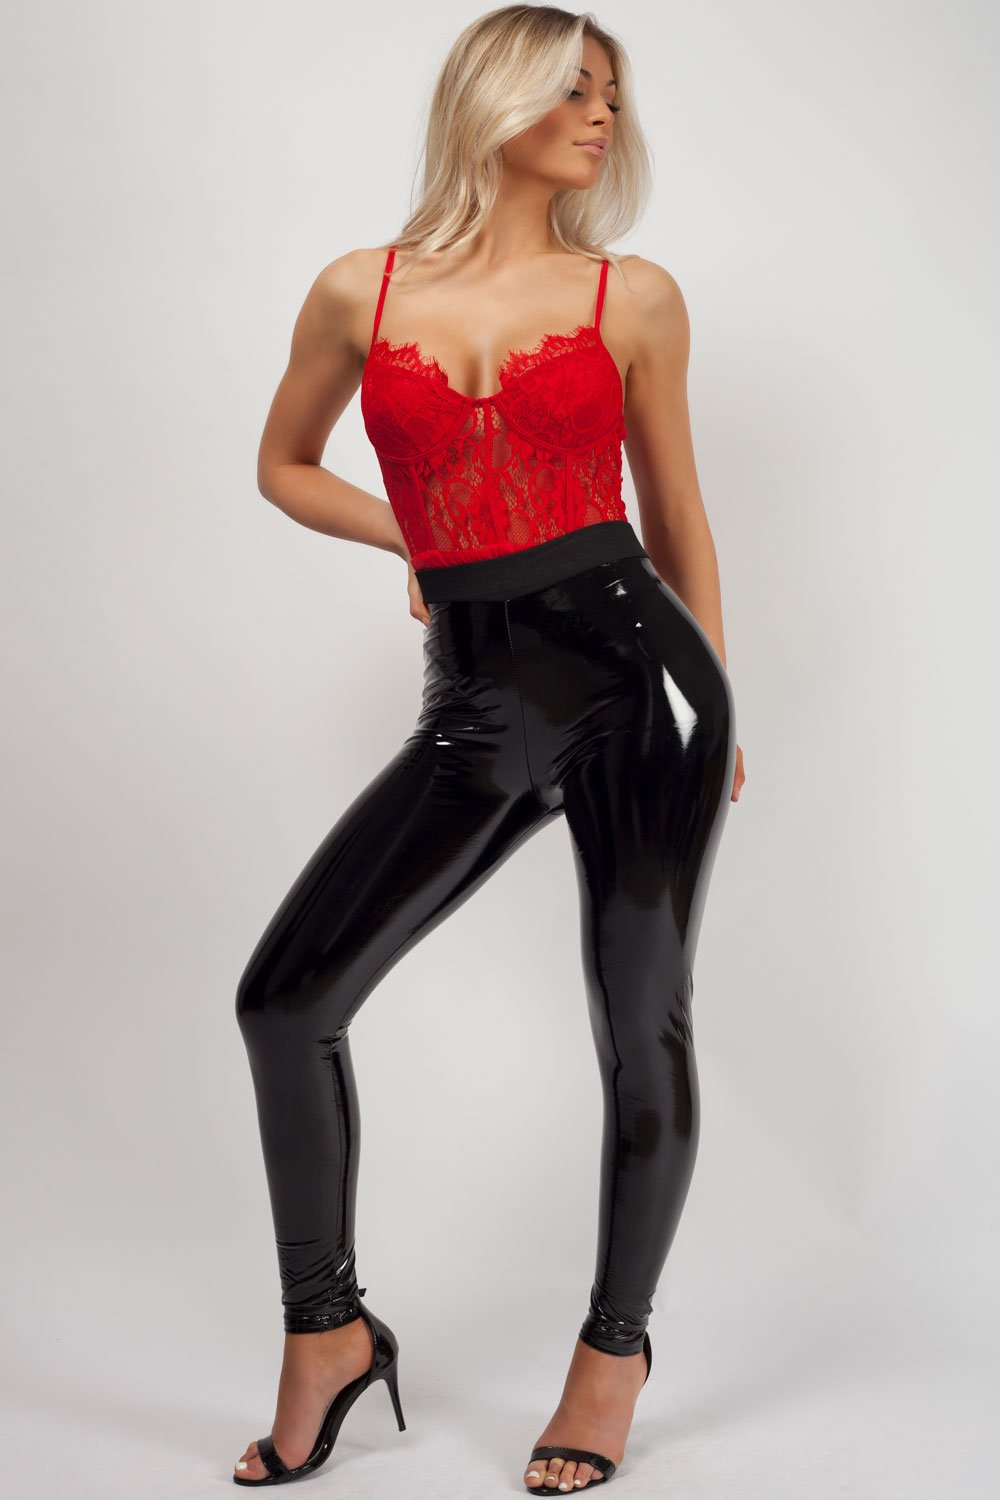 black vinyl trousers uk womens